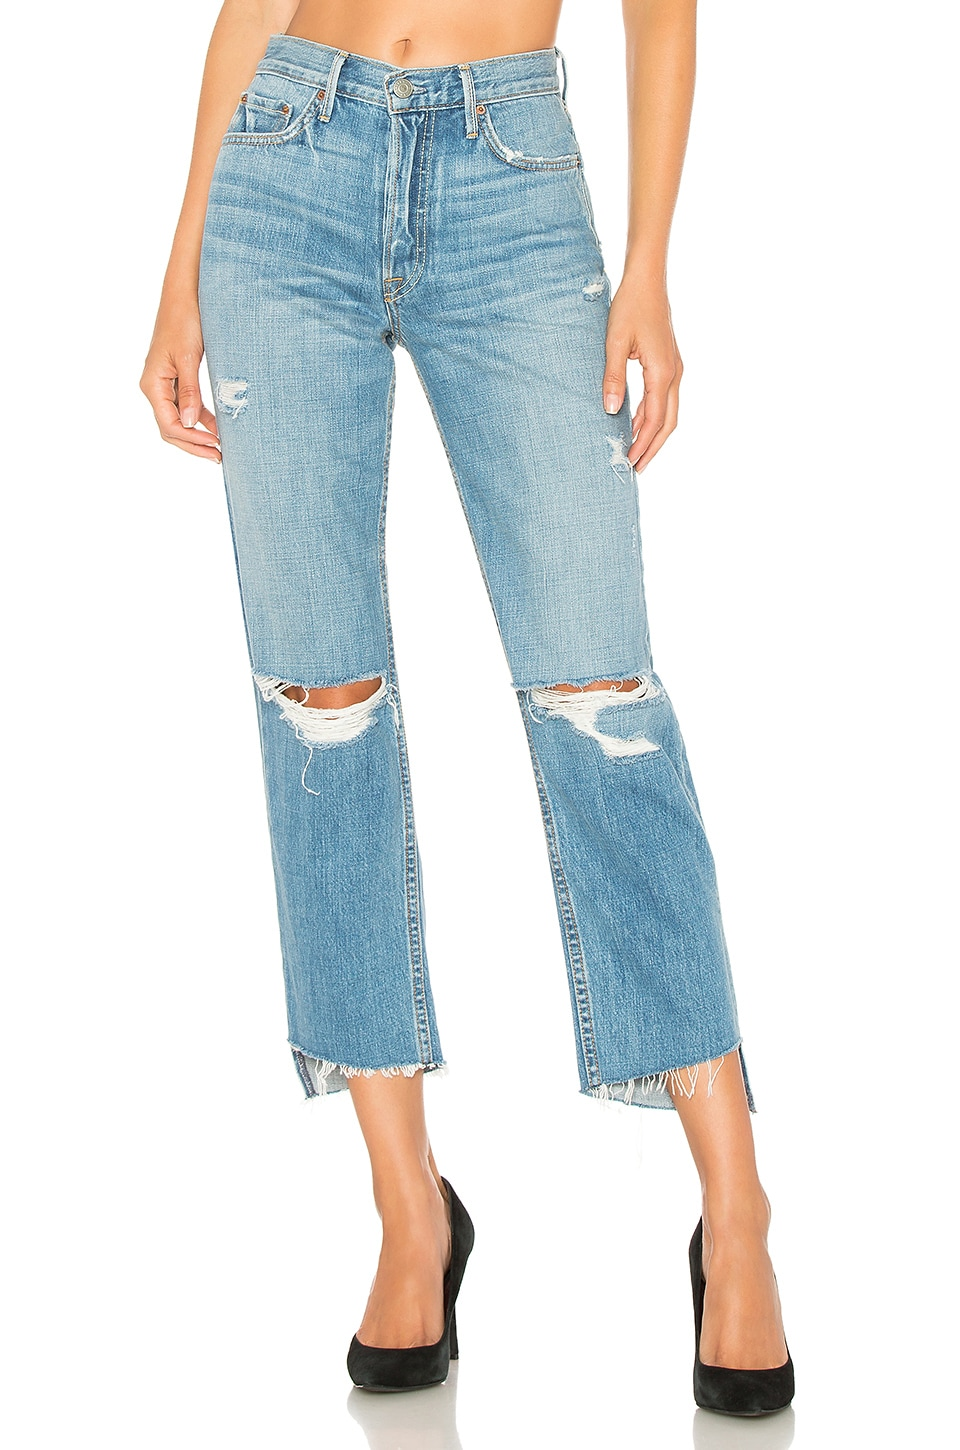 GRLFRND Helena High-Rise Straight Crop Jean in Last Song